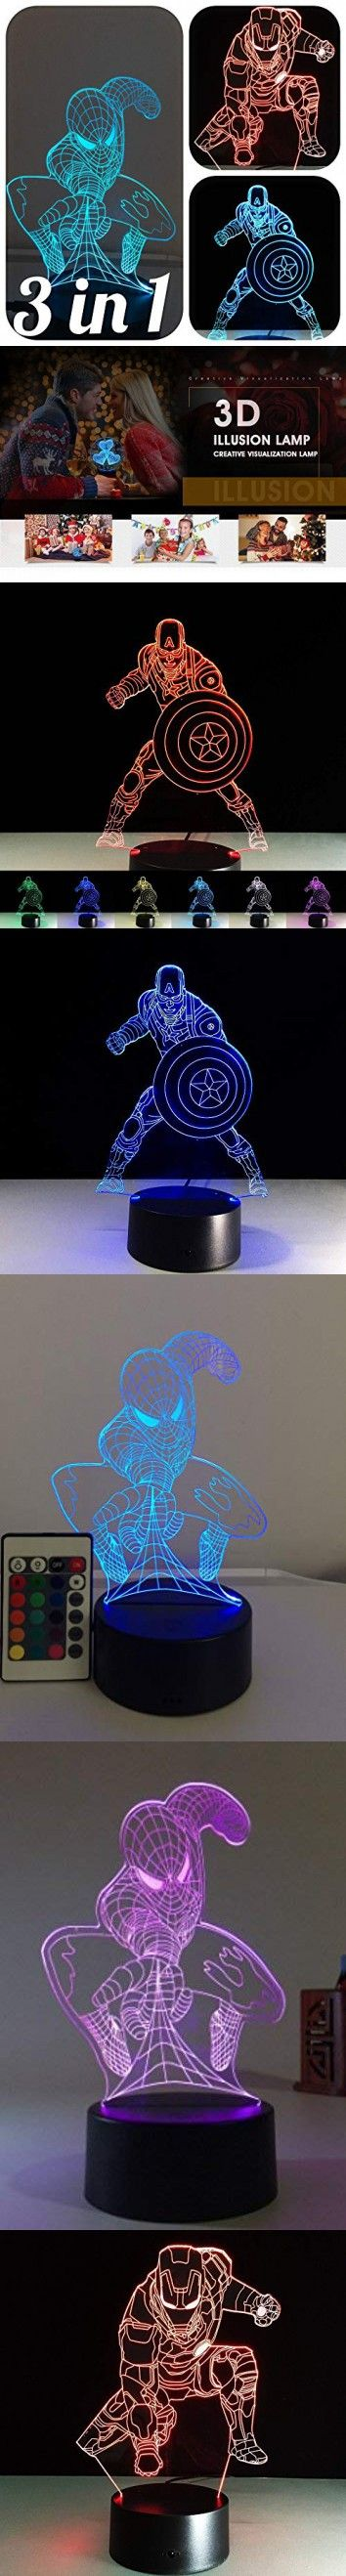 3 In 1 3d Night Lights For Kids 7 Colors 3d Led Illusion Lamp With Remote Control Bedroom Table Lamp Spiderman Captain America Ironman Avengers 3 In1 3d Night Light Night Light Spiderman Lamp